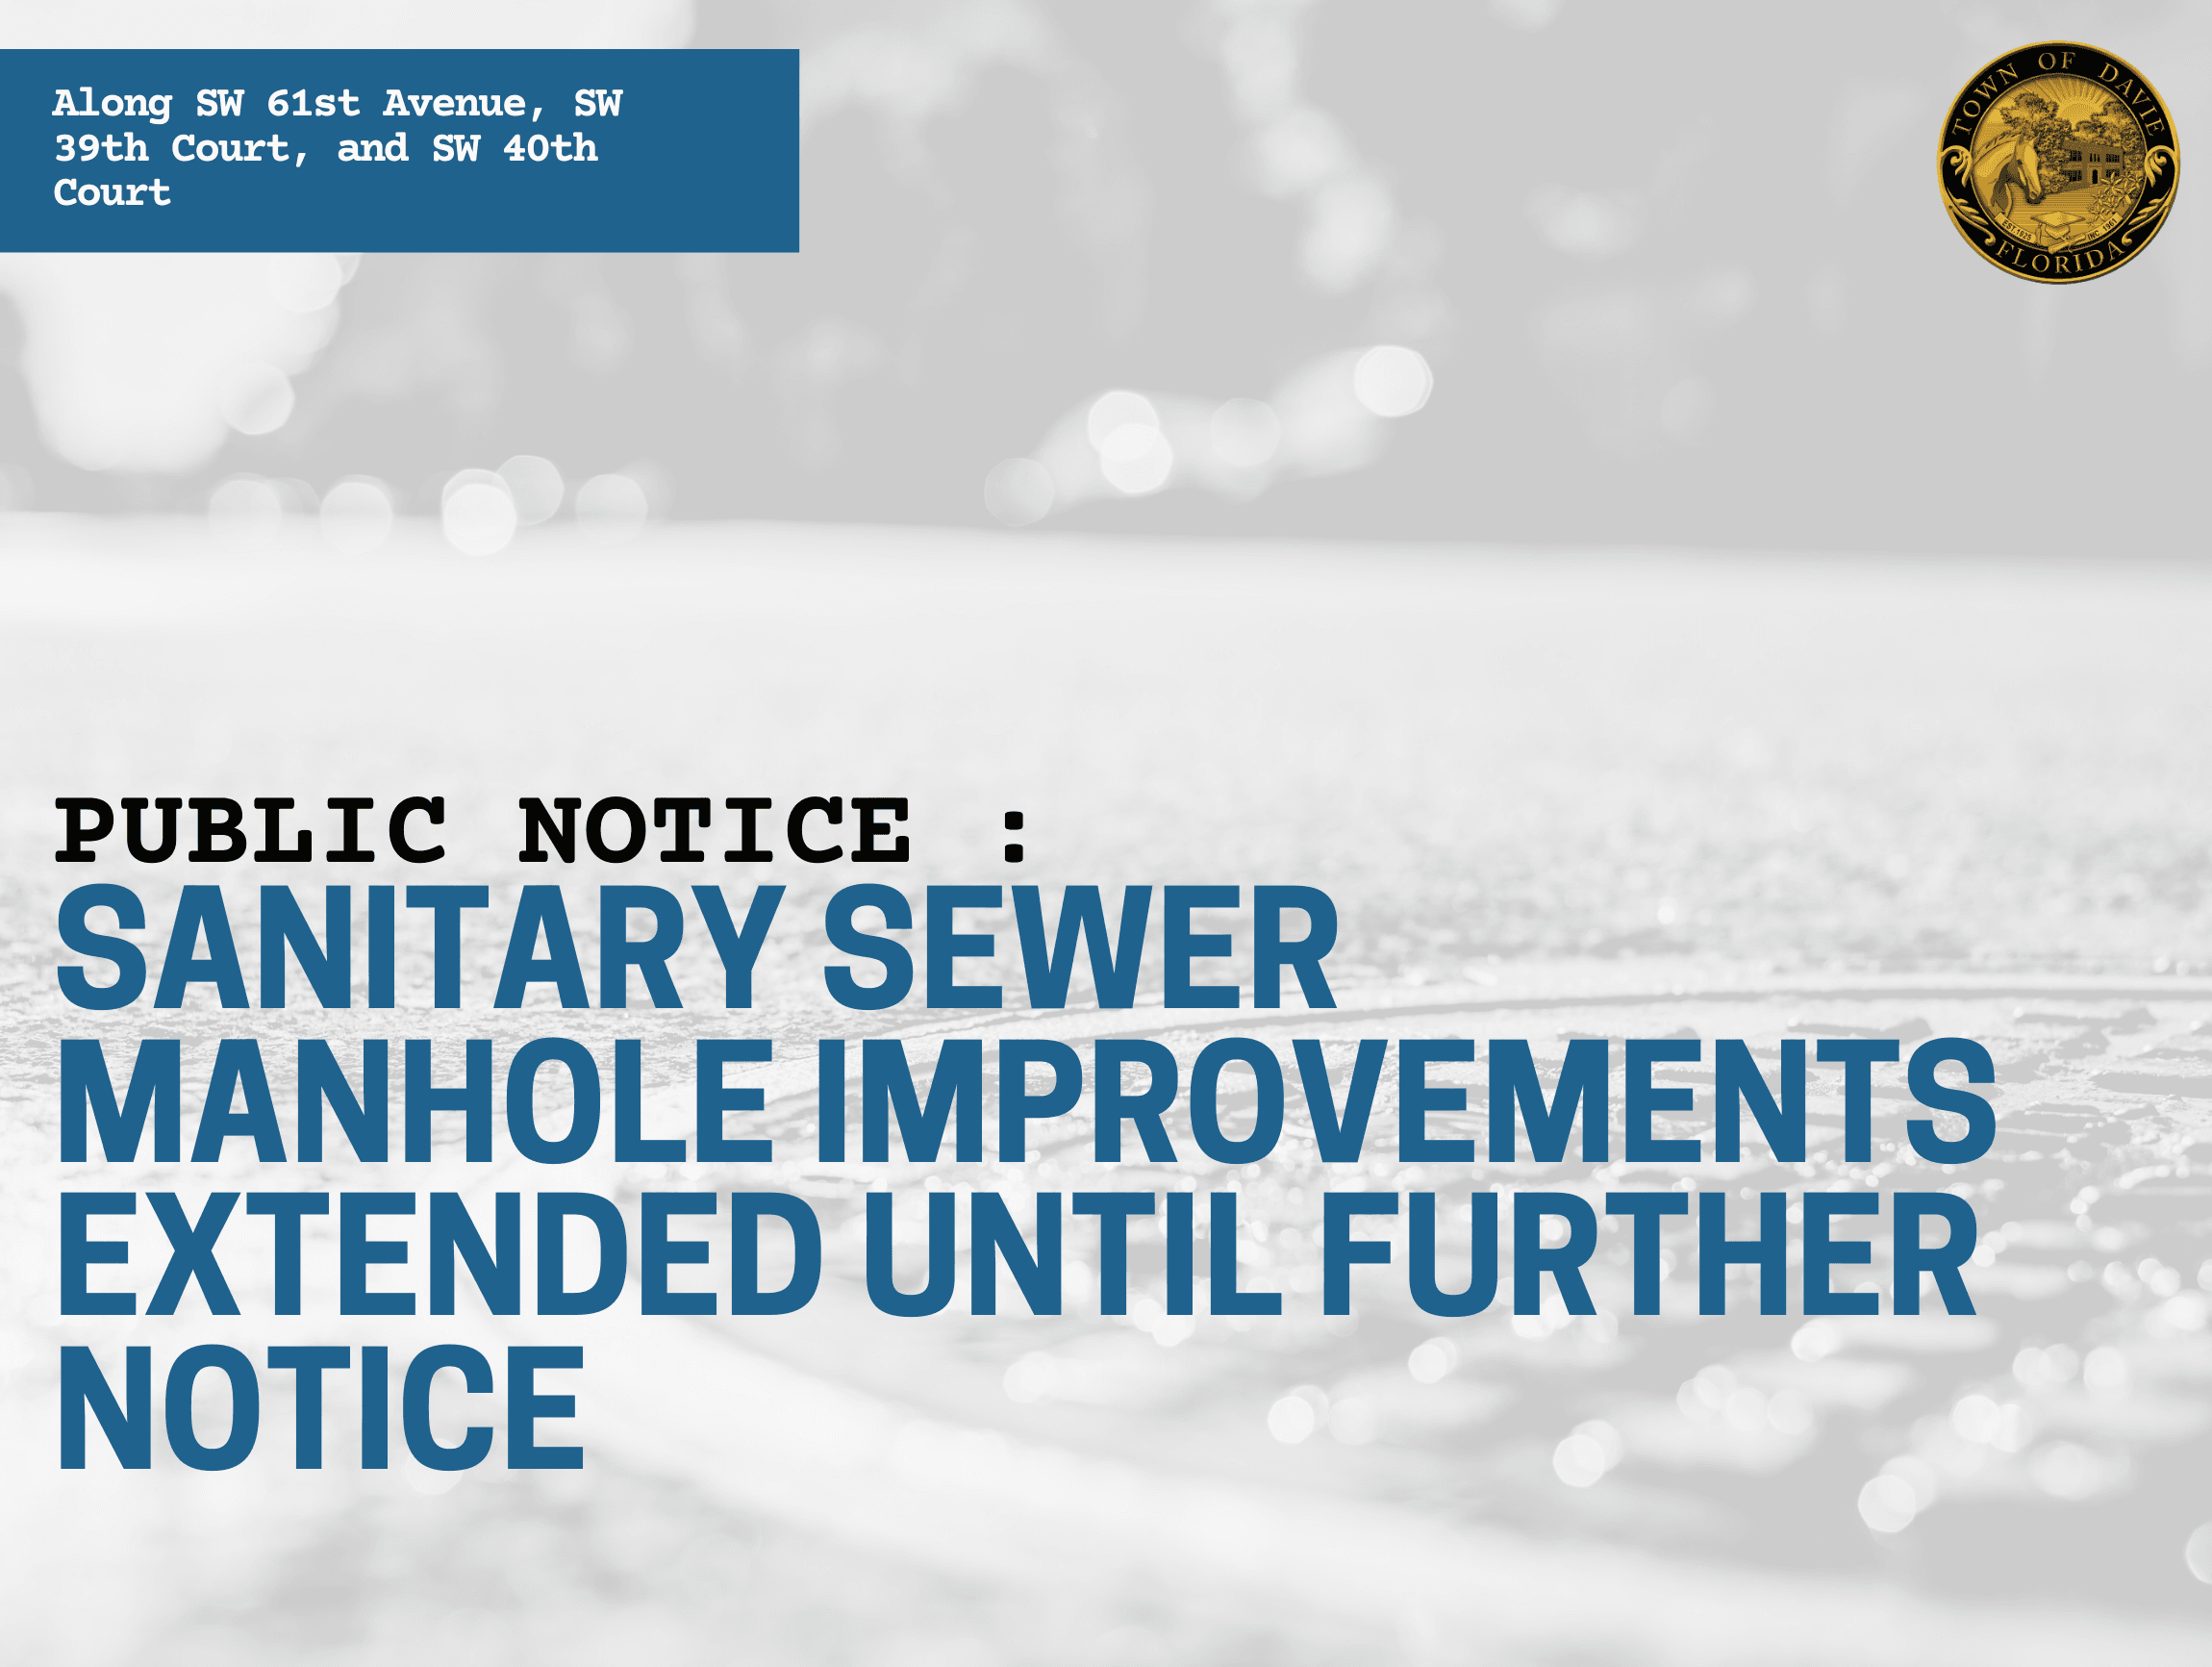 PUBLIC NOTICE _ SANITARY SEWER MANHOLE IMPROVEMENTS